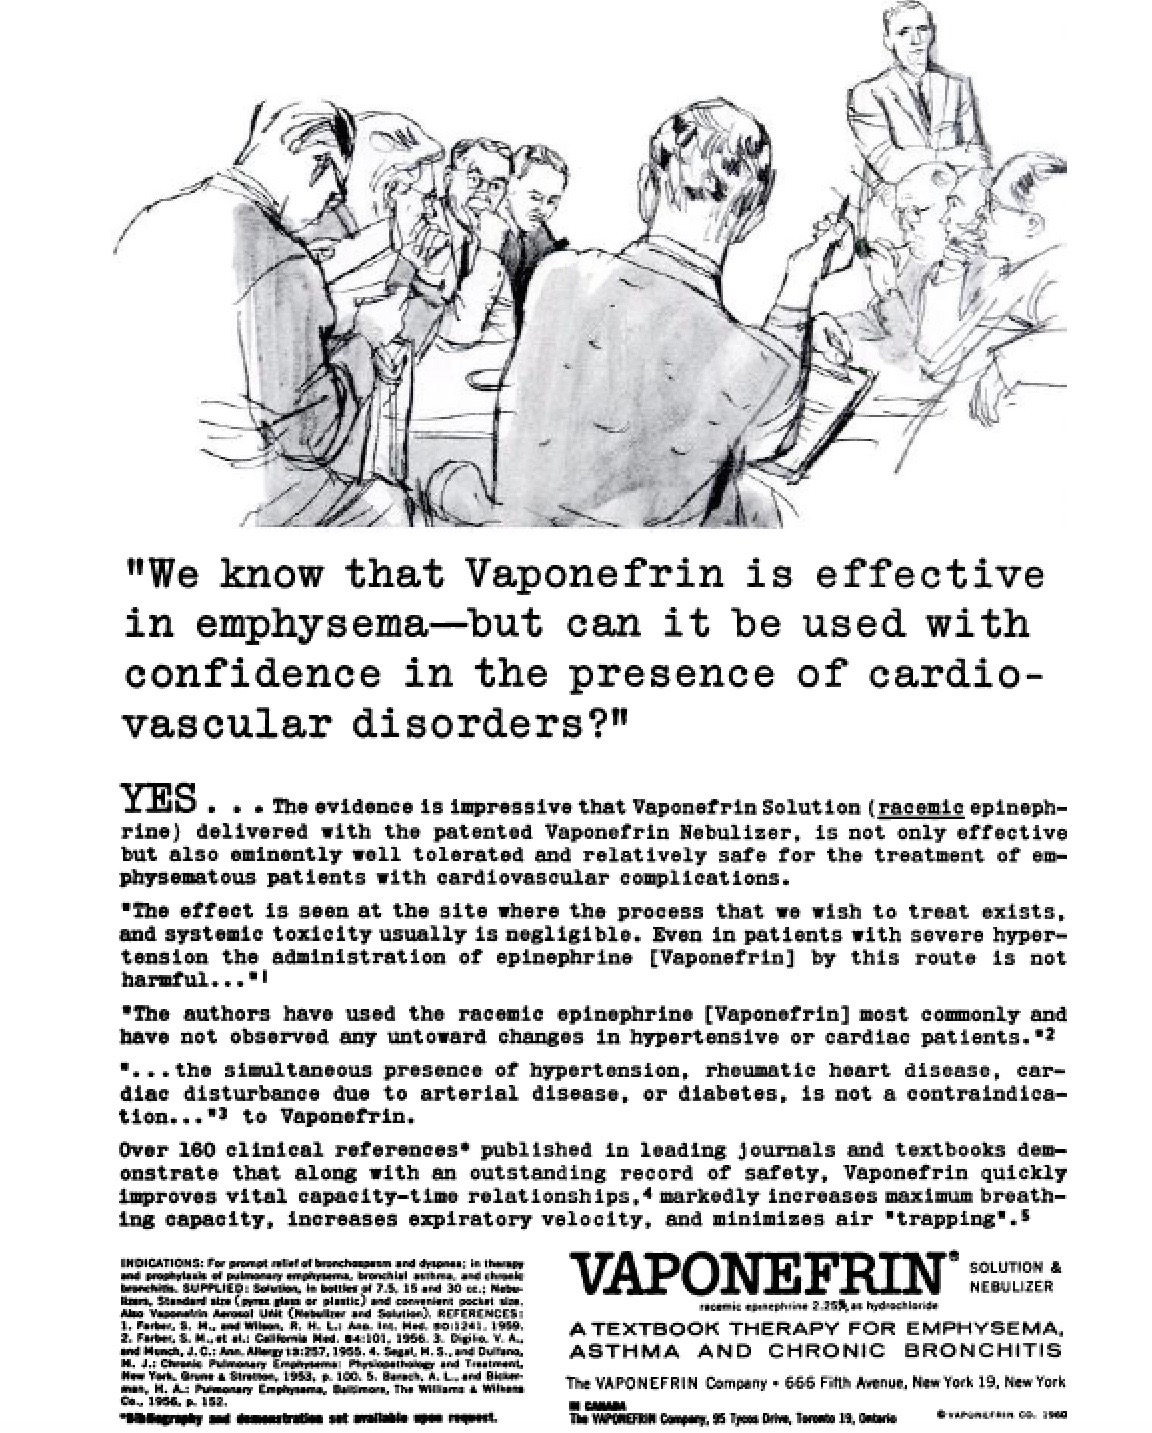 Vaponefrin ad from 1950s